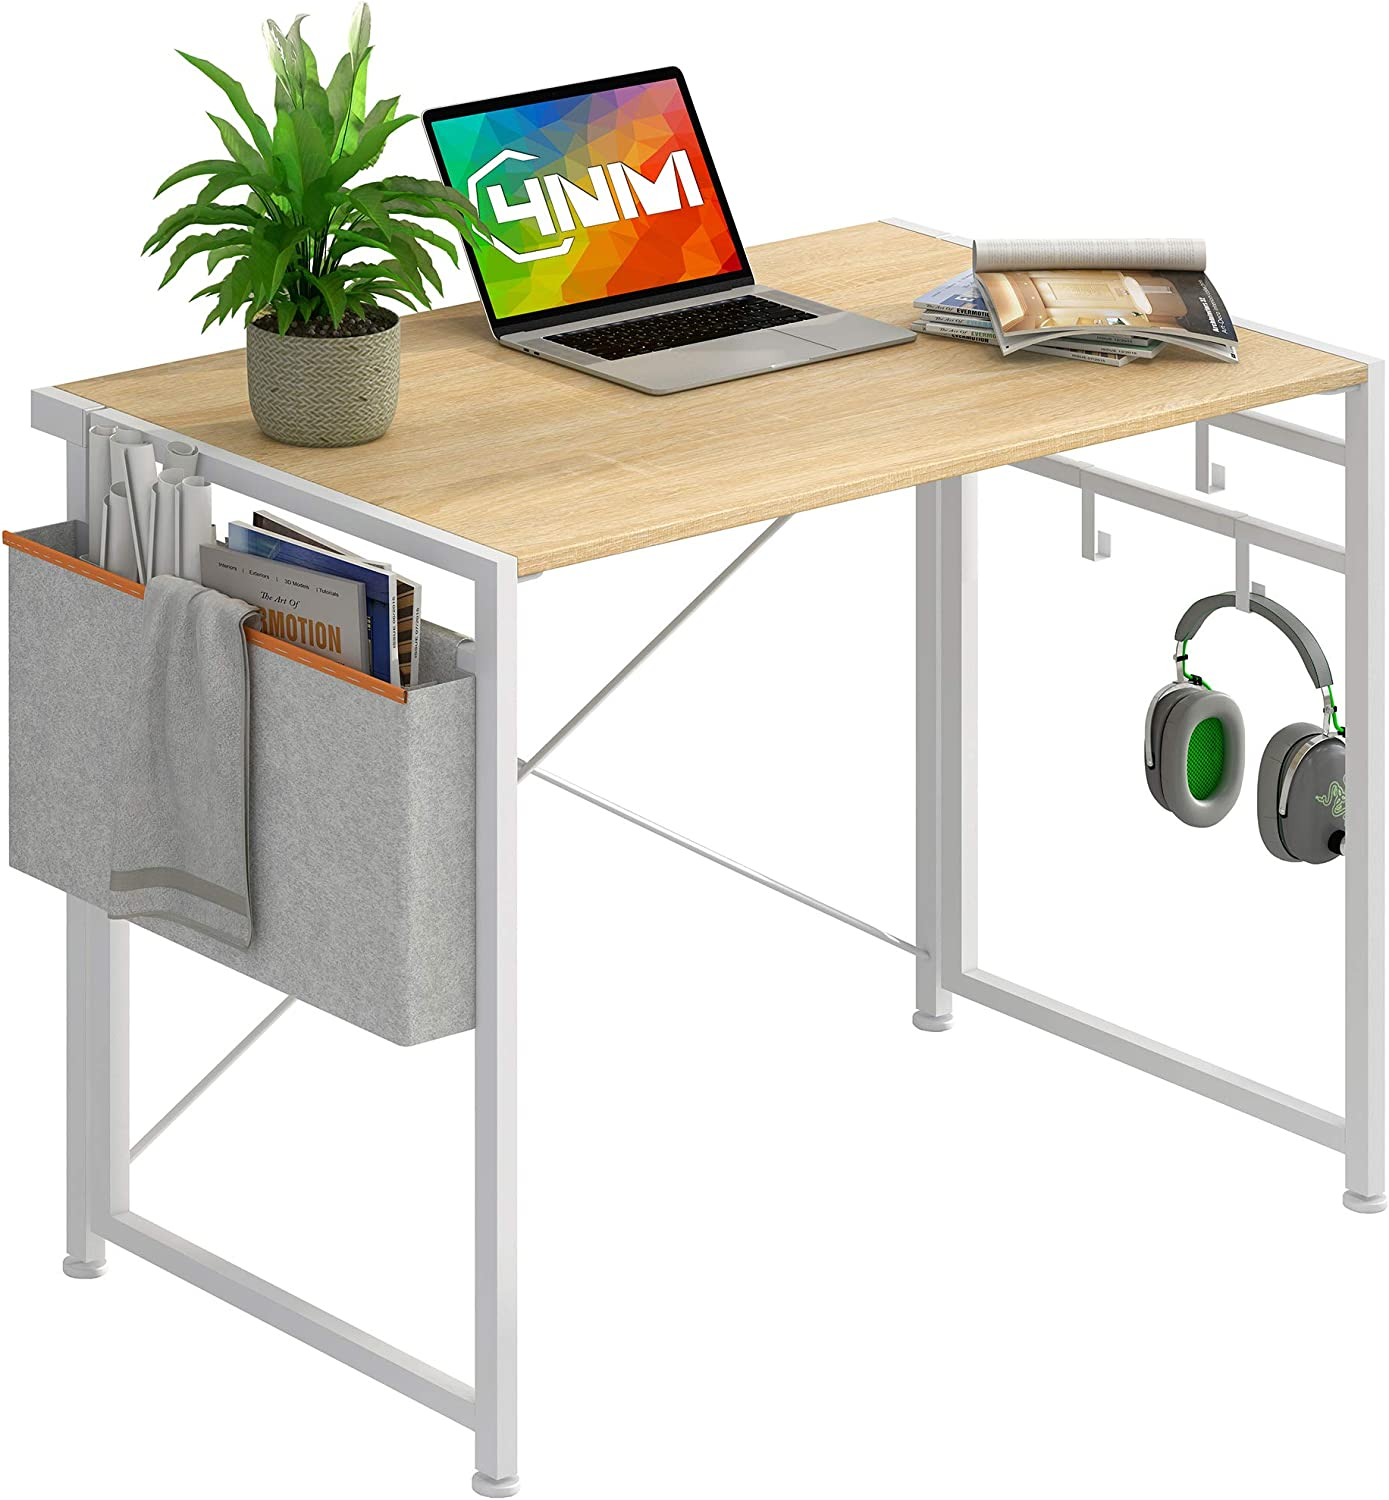 4NM No-Assembly Folding Desk with Storage Bag and 4-Hook Small Computer Desk Laptop Table Compact Home Office Desk Study Reading Table for Space Saving Office Table (White with Storage Bag)